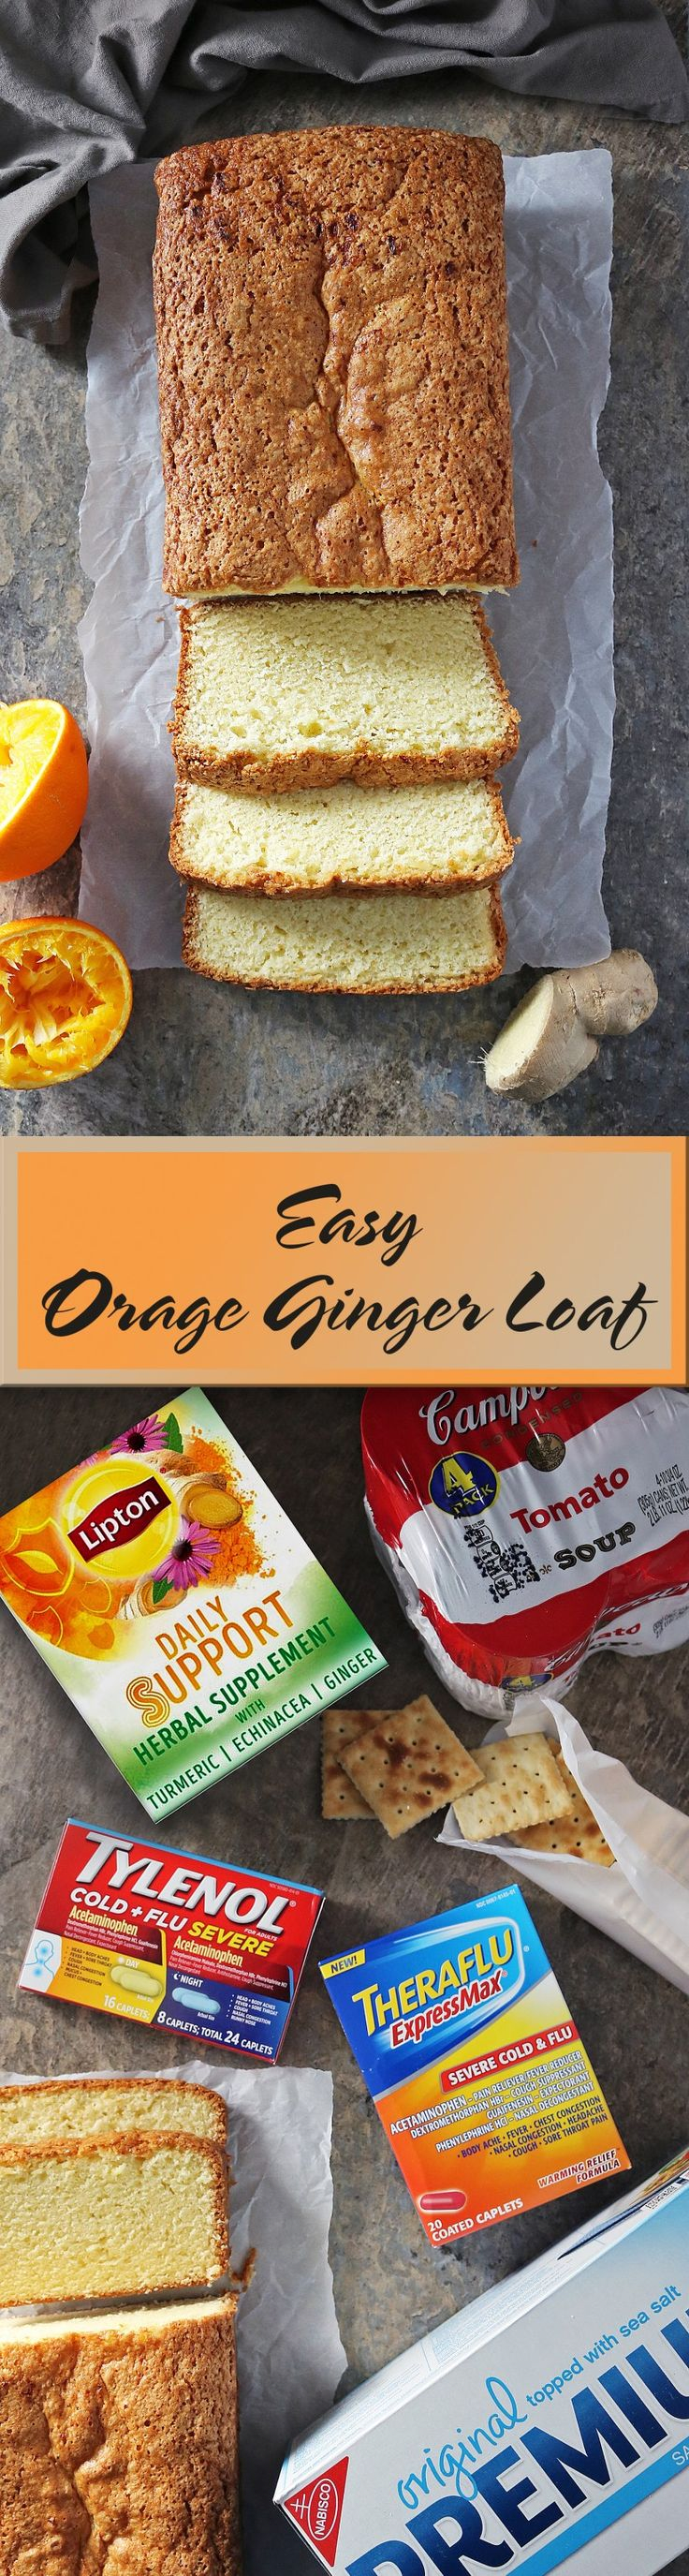 This Orange Ginger Loaf, it is really so easy to make, with only 8 ingredients - which you probably already have lying around. It uses olive oil instead of butter and fresh orange juice instead of milk. Stiffly beaten egg whites make it light and airy, and ginger adds in just another level of flavor.